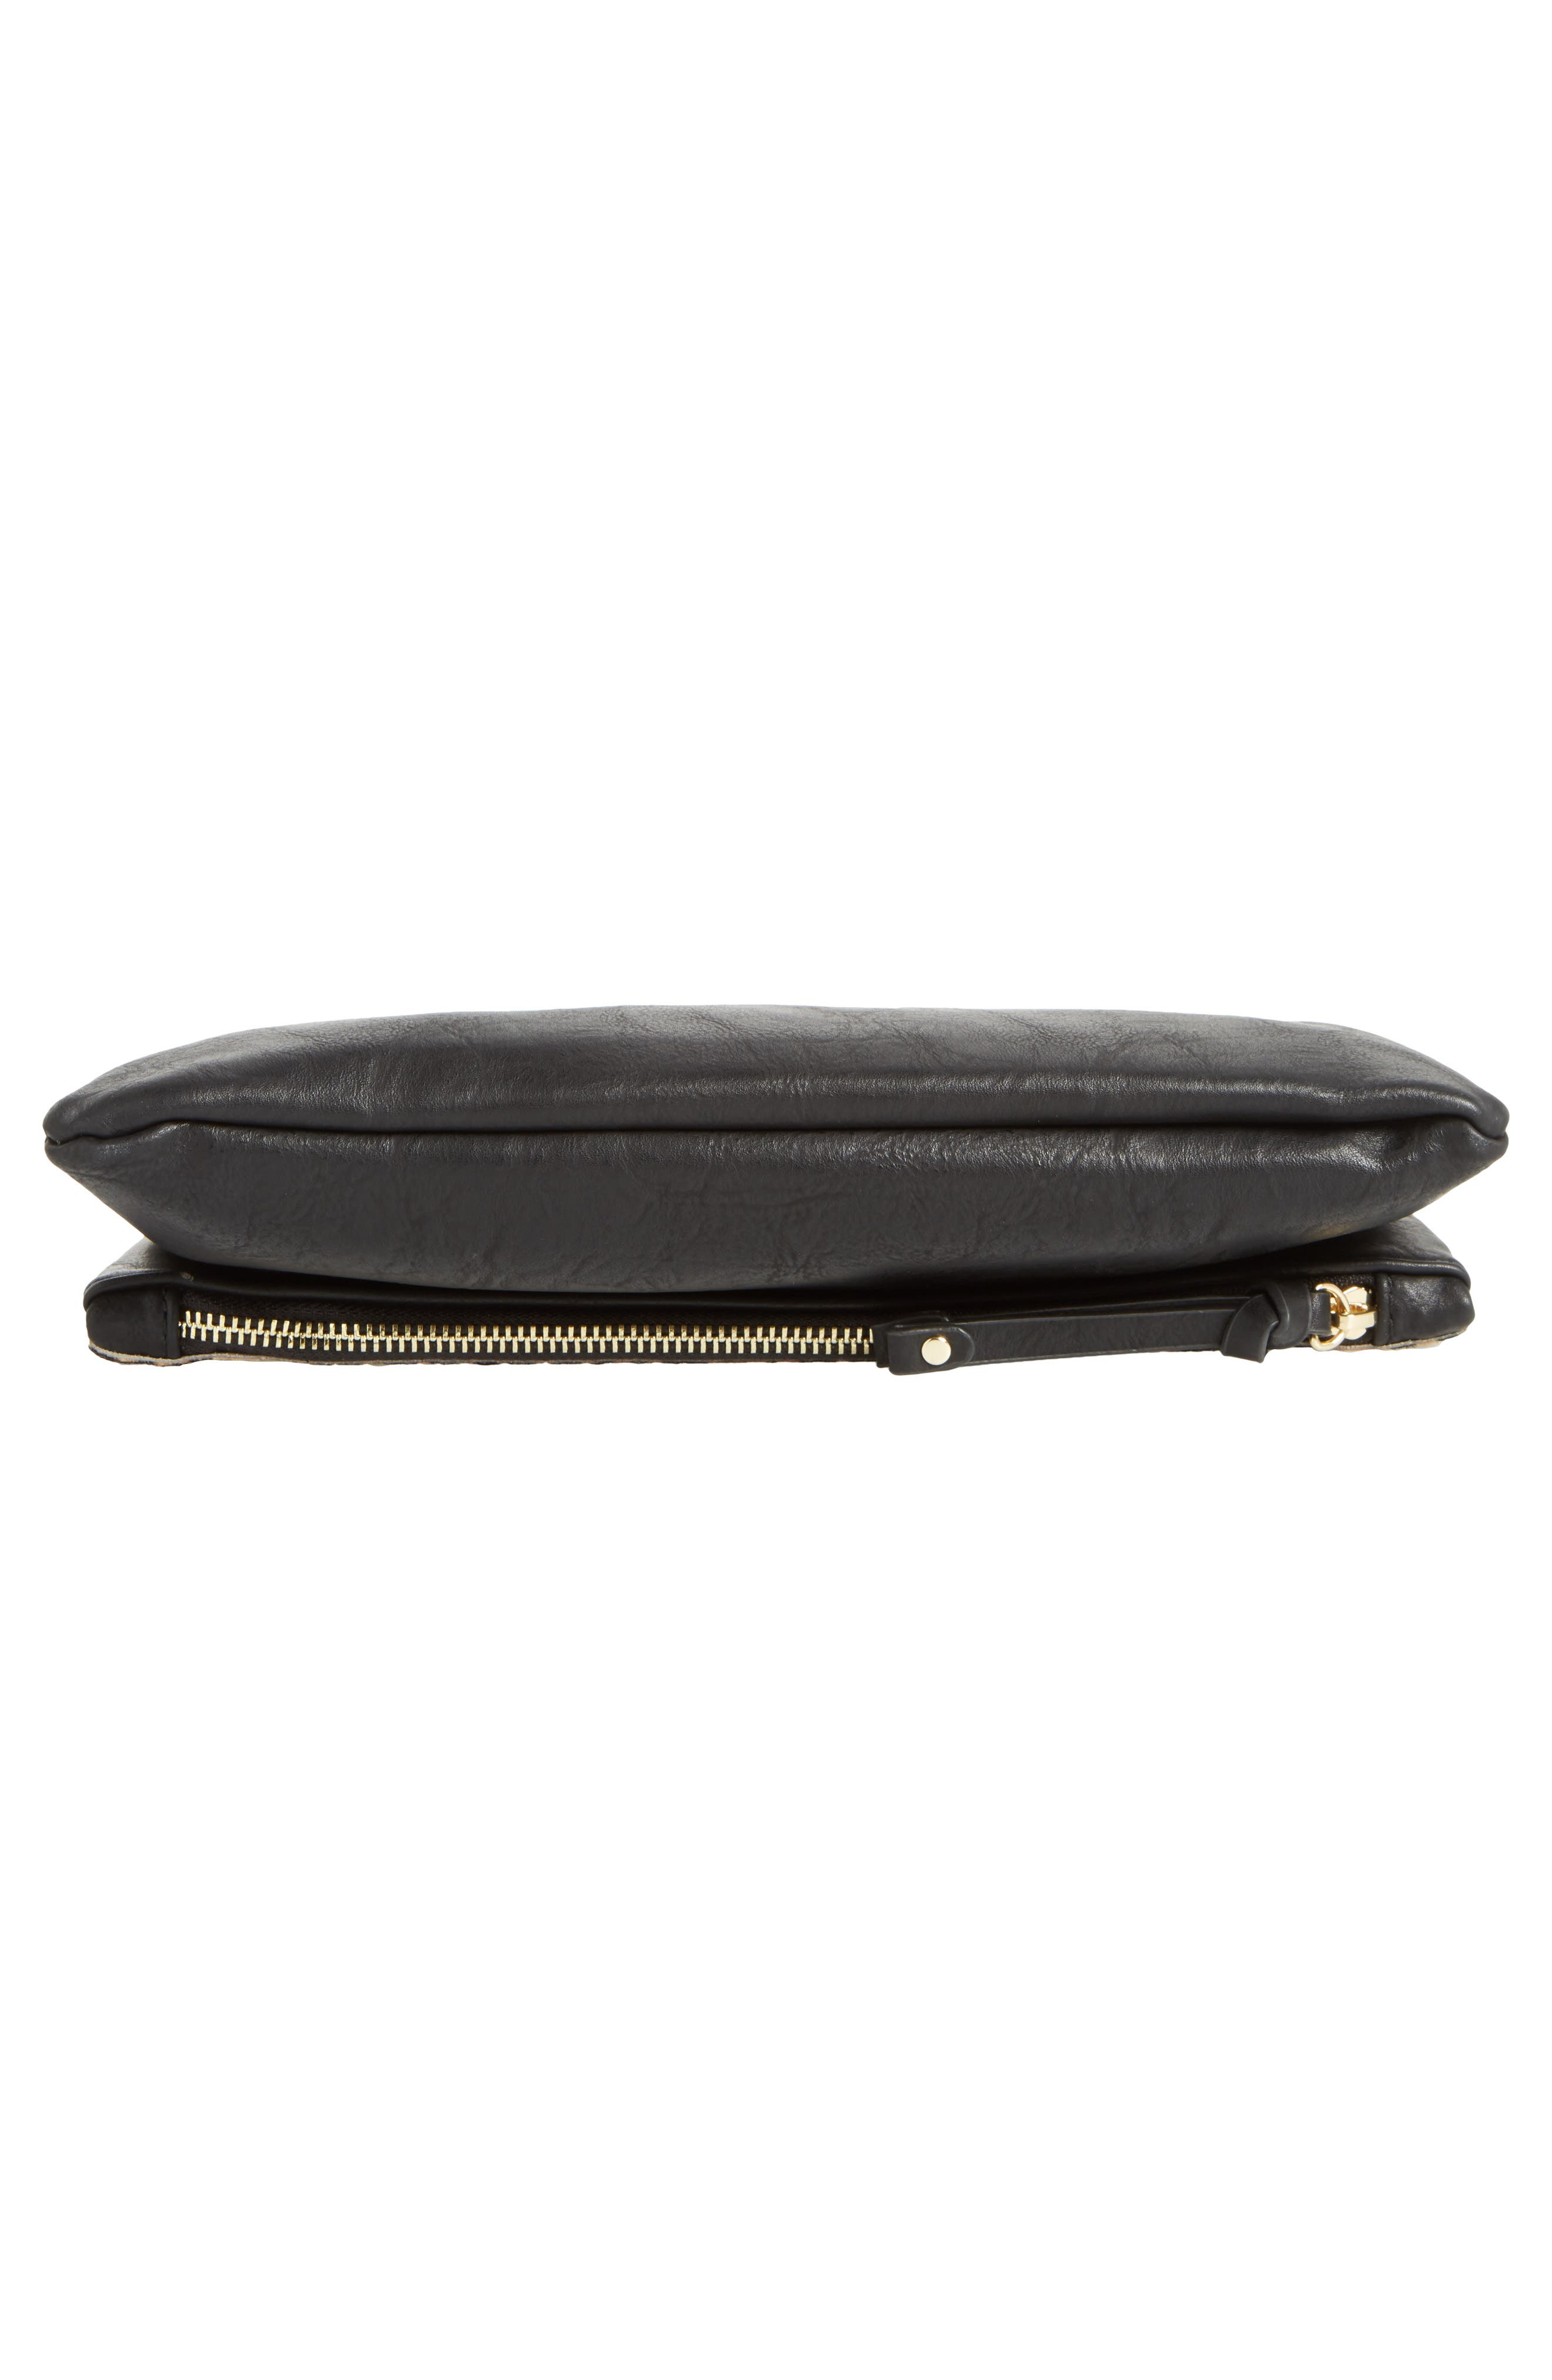 Marlena Faux Leather Foldover Clutch,                             Alternate thumbnail 6, color,                             200